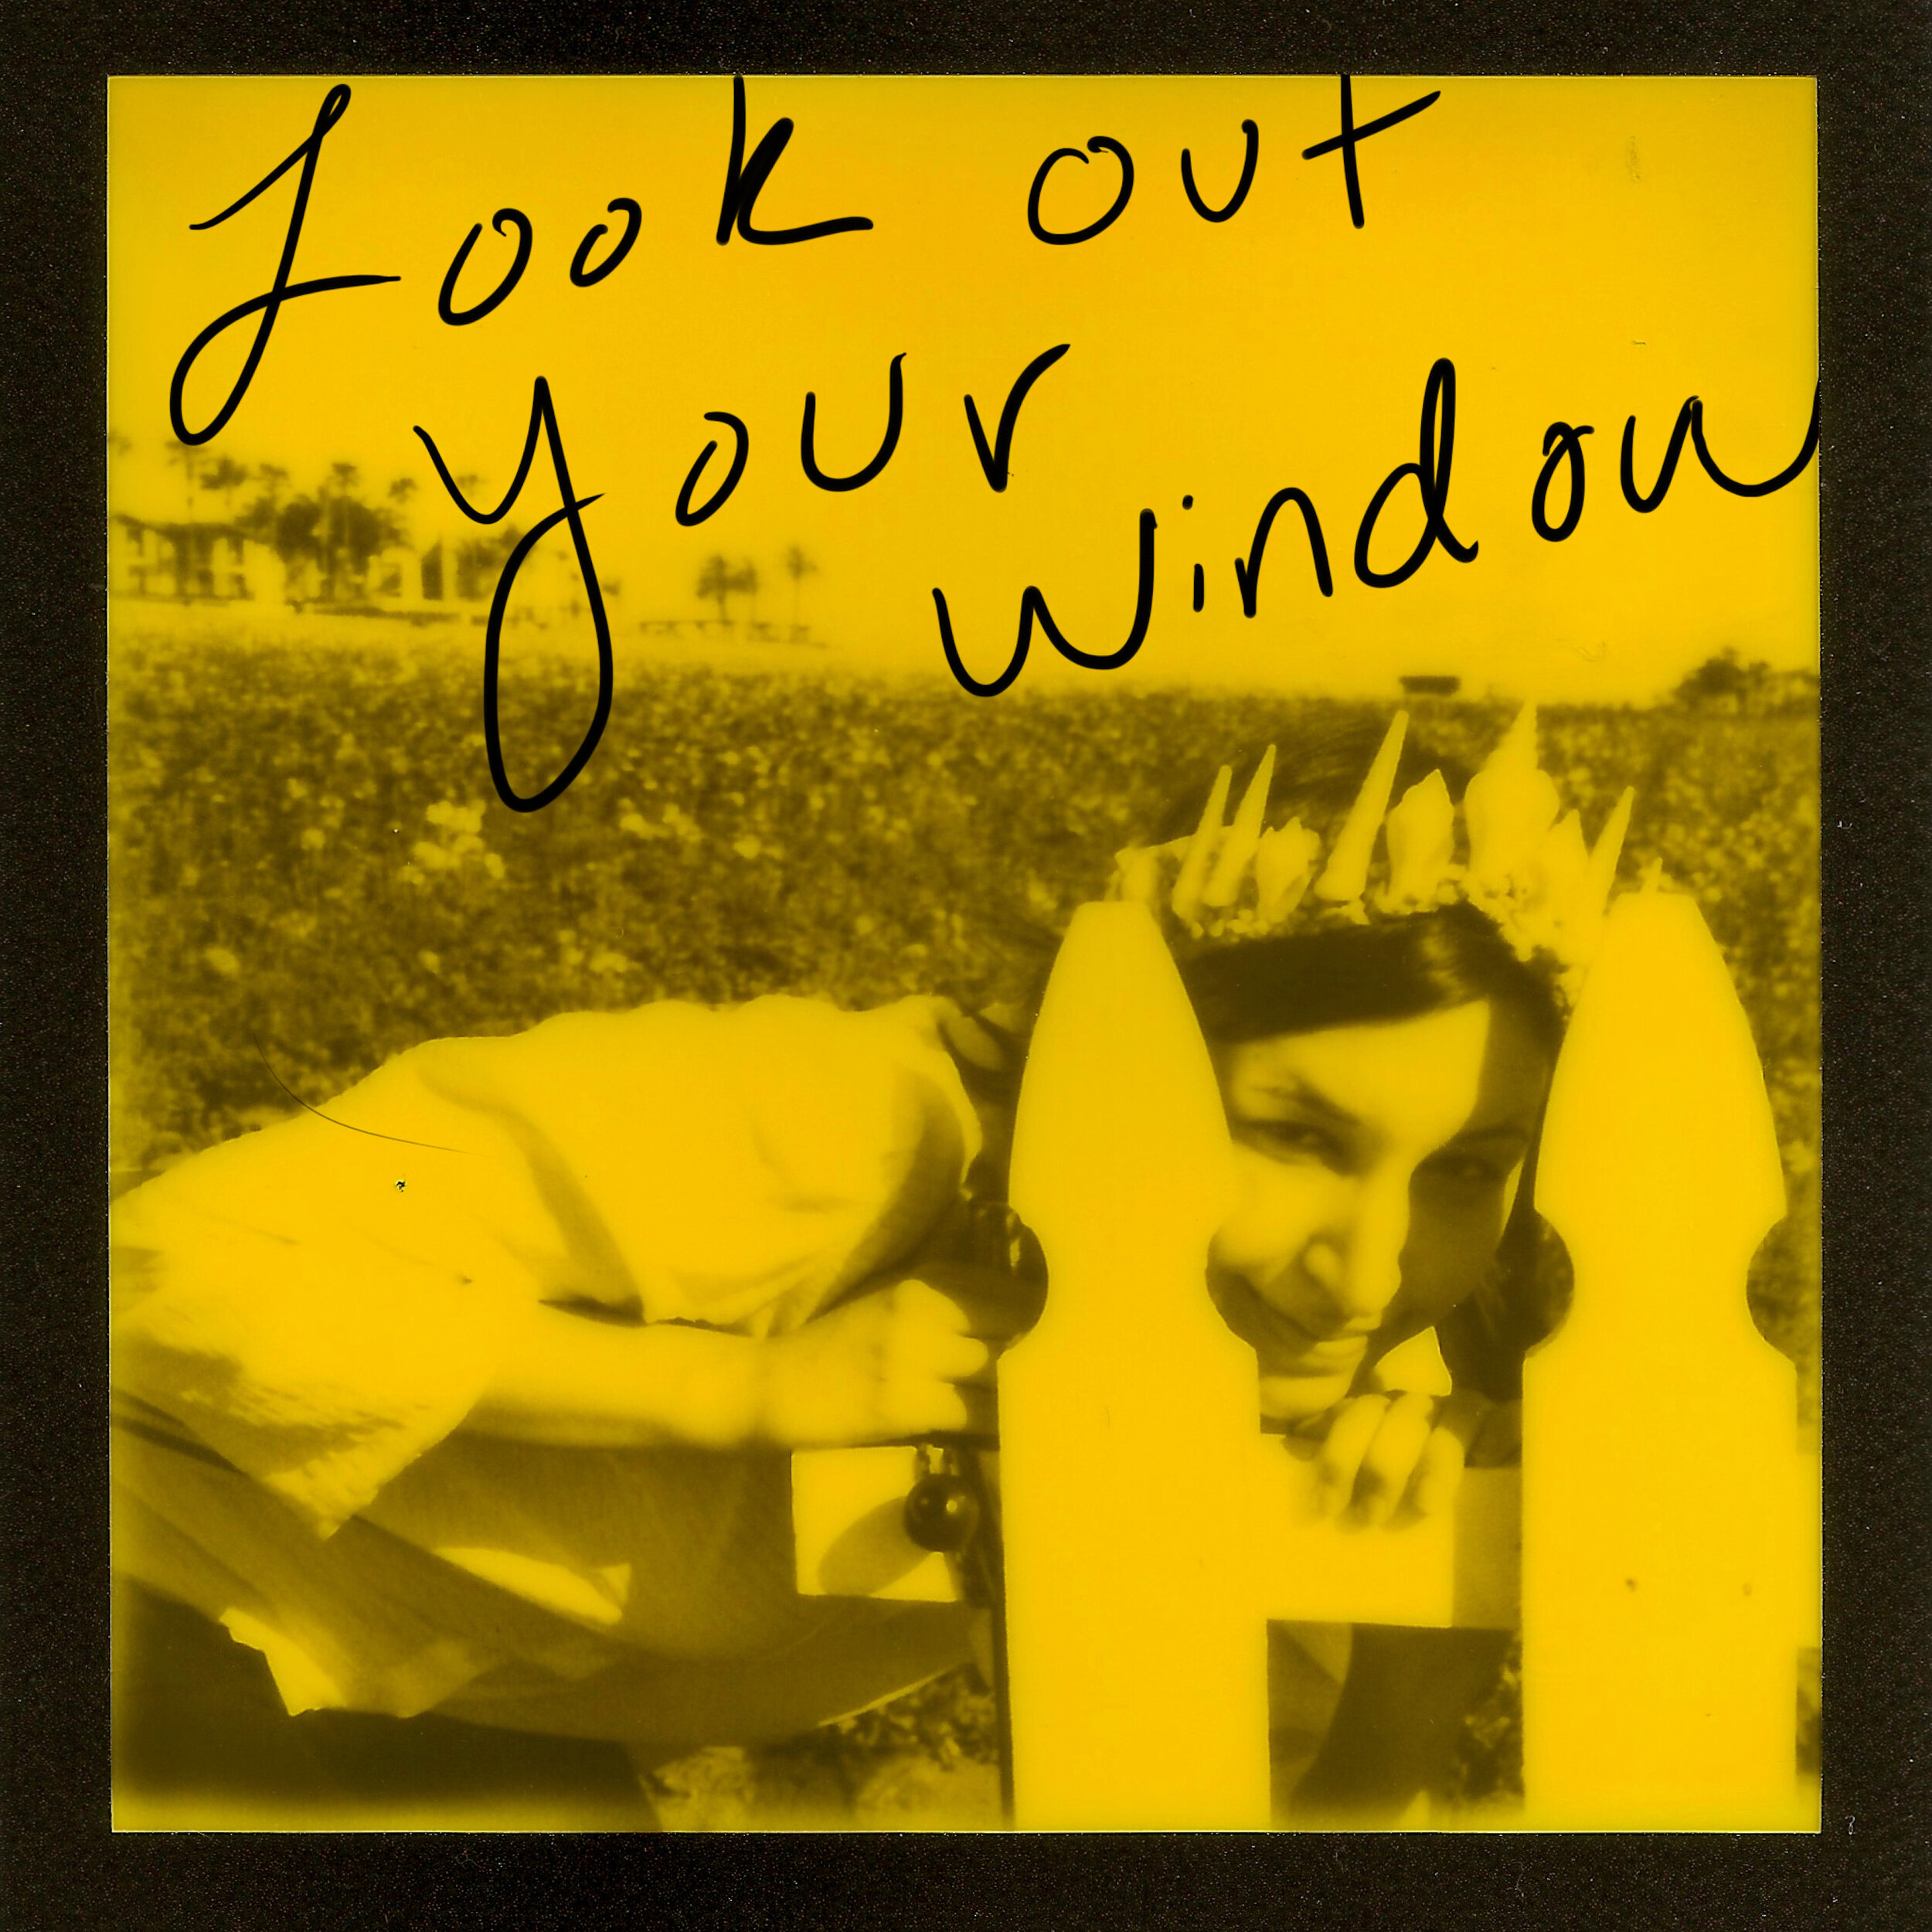 Look Out Your Window 3053 WTfinal 3000x3000.jpg